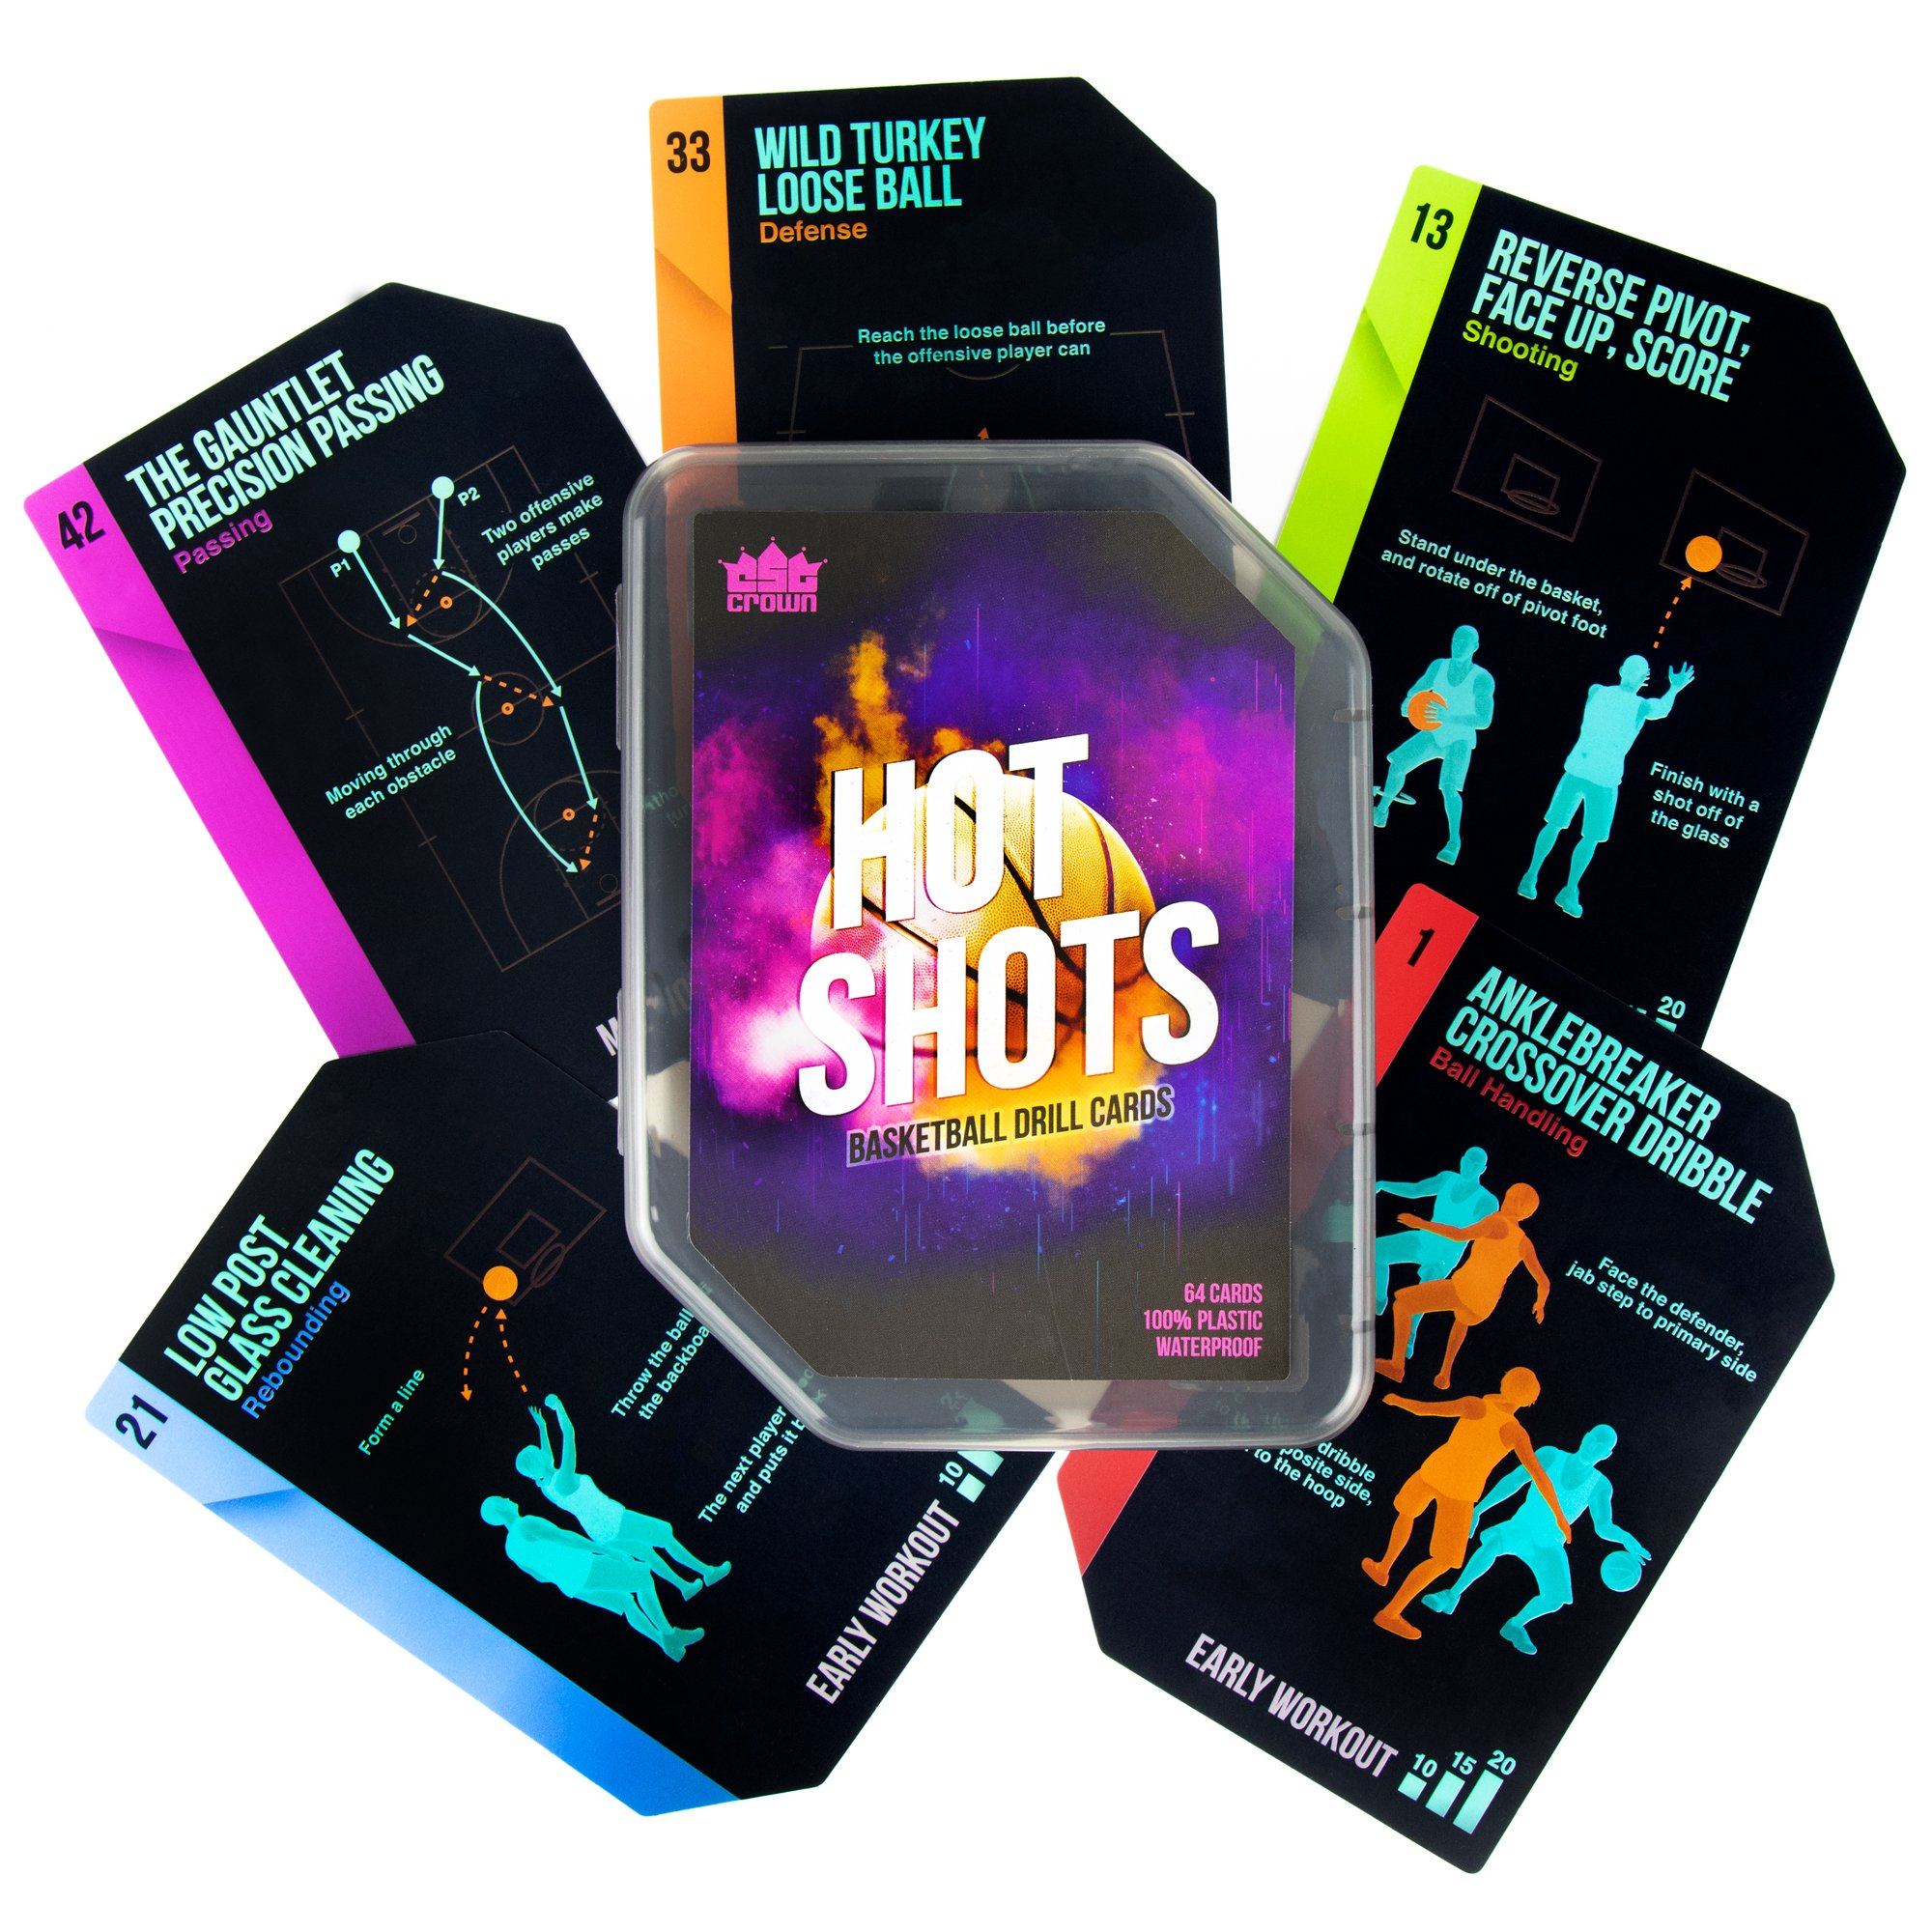 Crown Sporting Goods Hot Shots Basketball Drill Cards, 64 Waterproof Plastic Cards - Includes 45 Guided Drills, 9 Archetype Workouts, 5 Games, 5 Info Cards - Great for Skills Training & Coaching